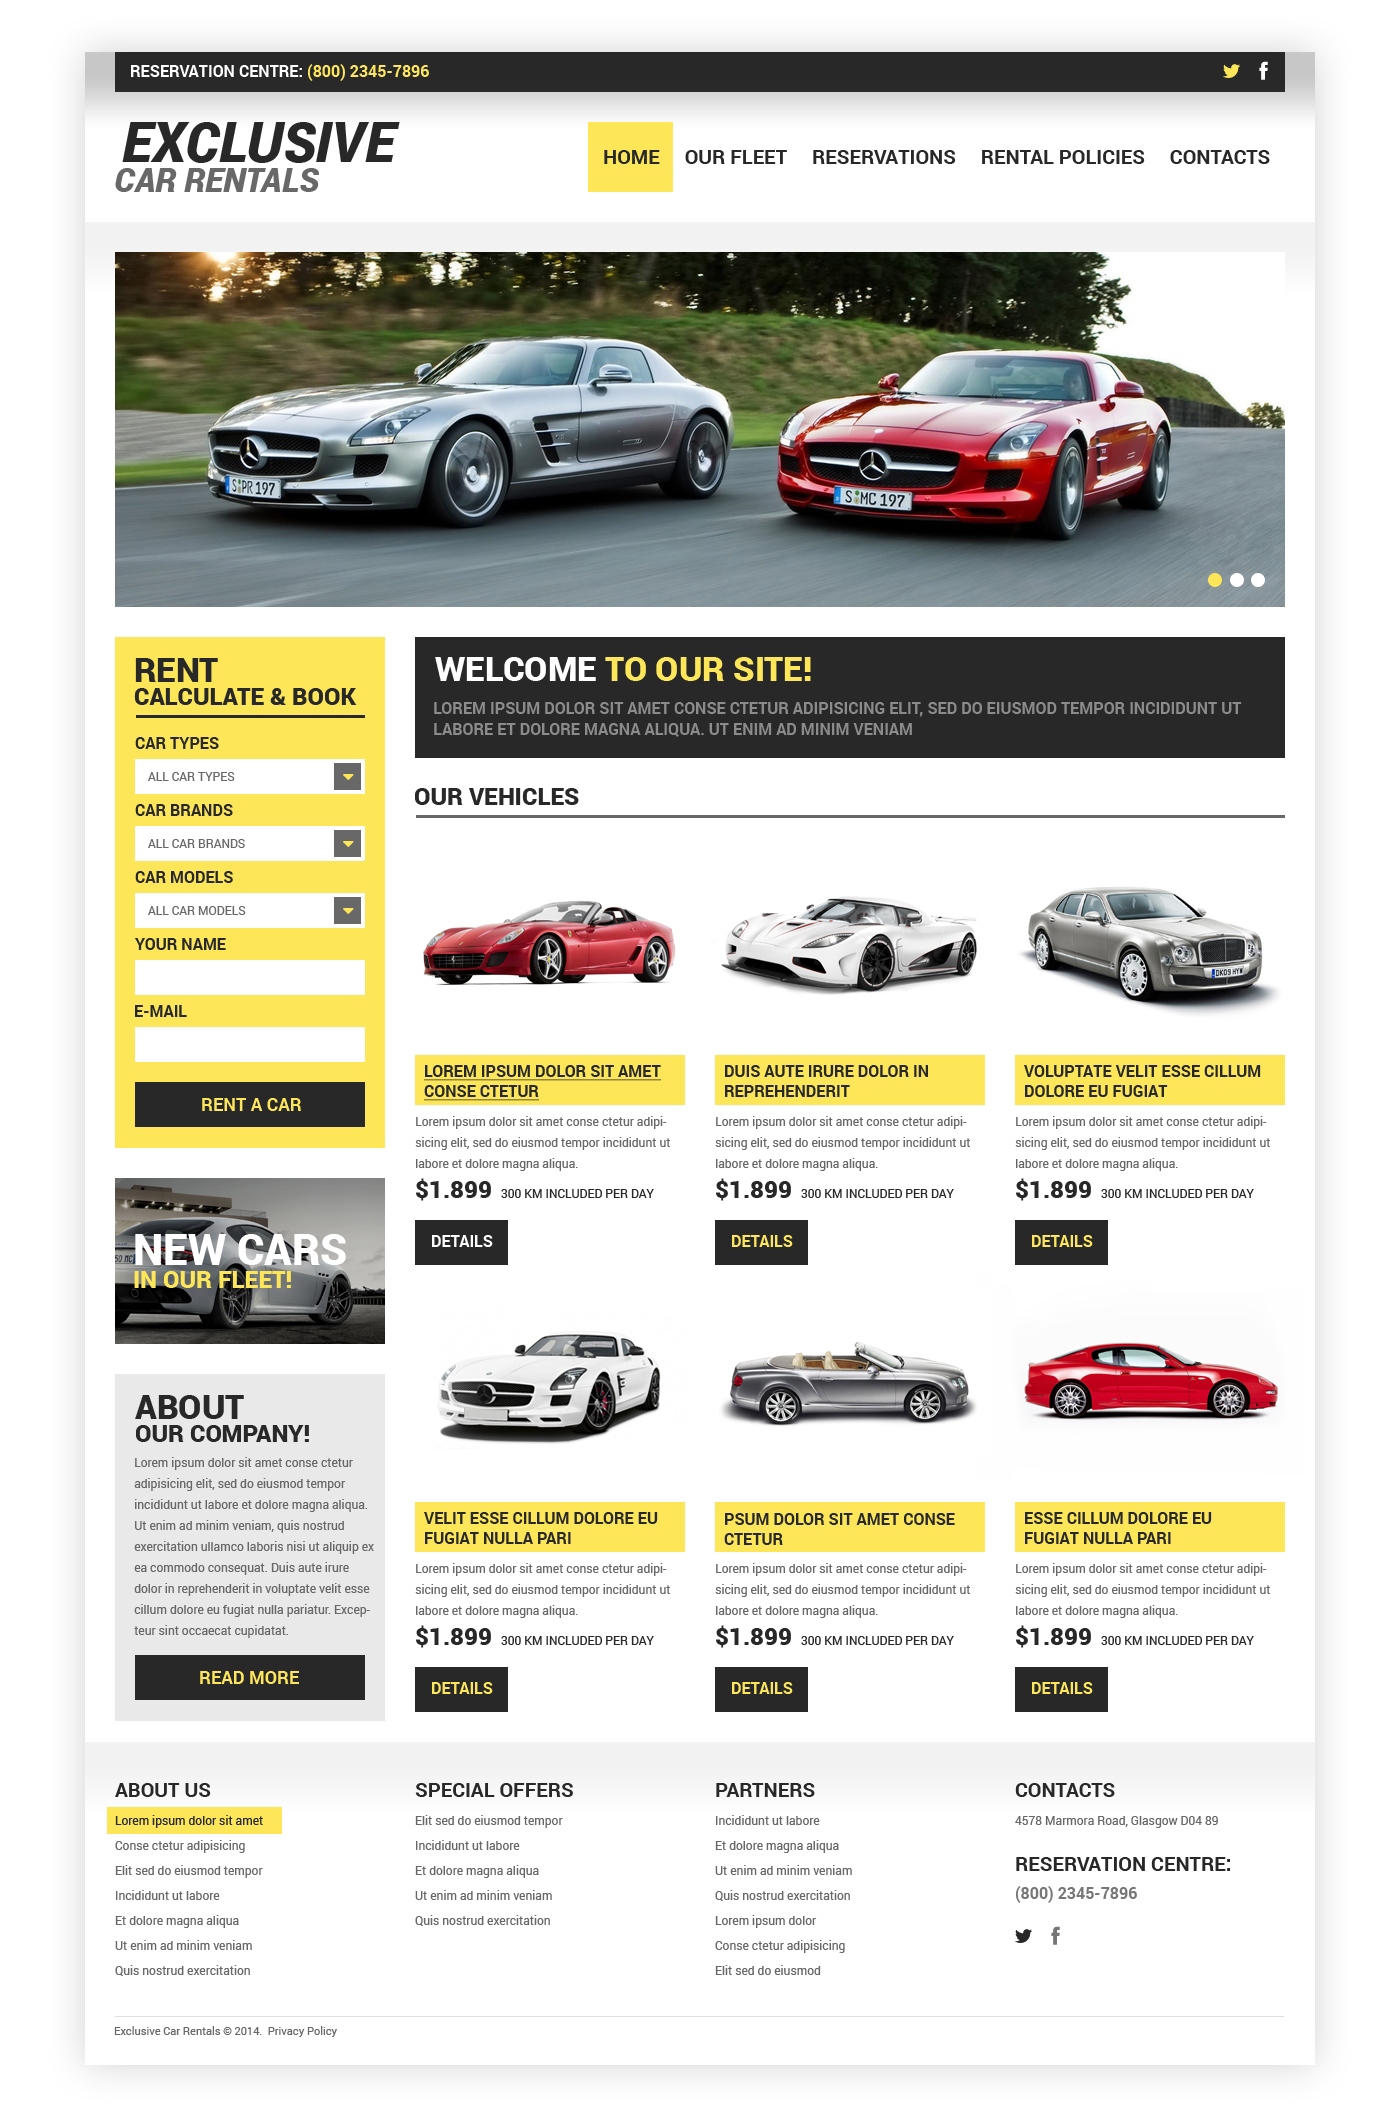 website design template rental auto dealer improvement new used certified exhibition solution market research